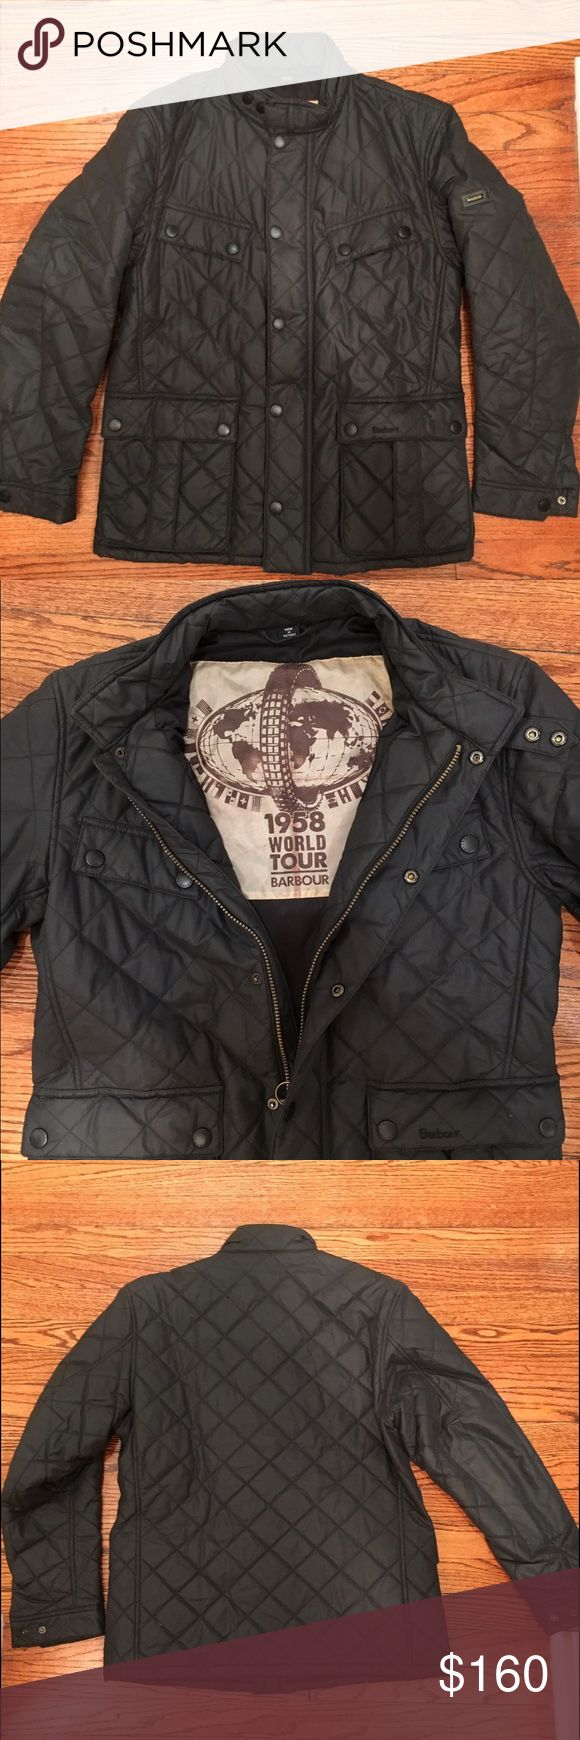 NEW YEARS EVE SALE!!! Barbour international jacket My husband wore this once - perfect condition Barbour Jackets & Coats